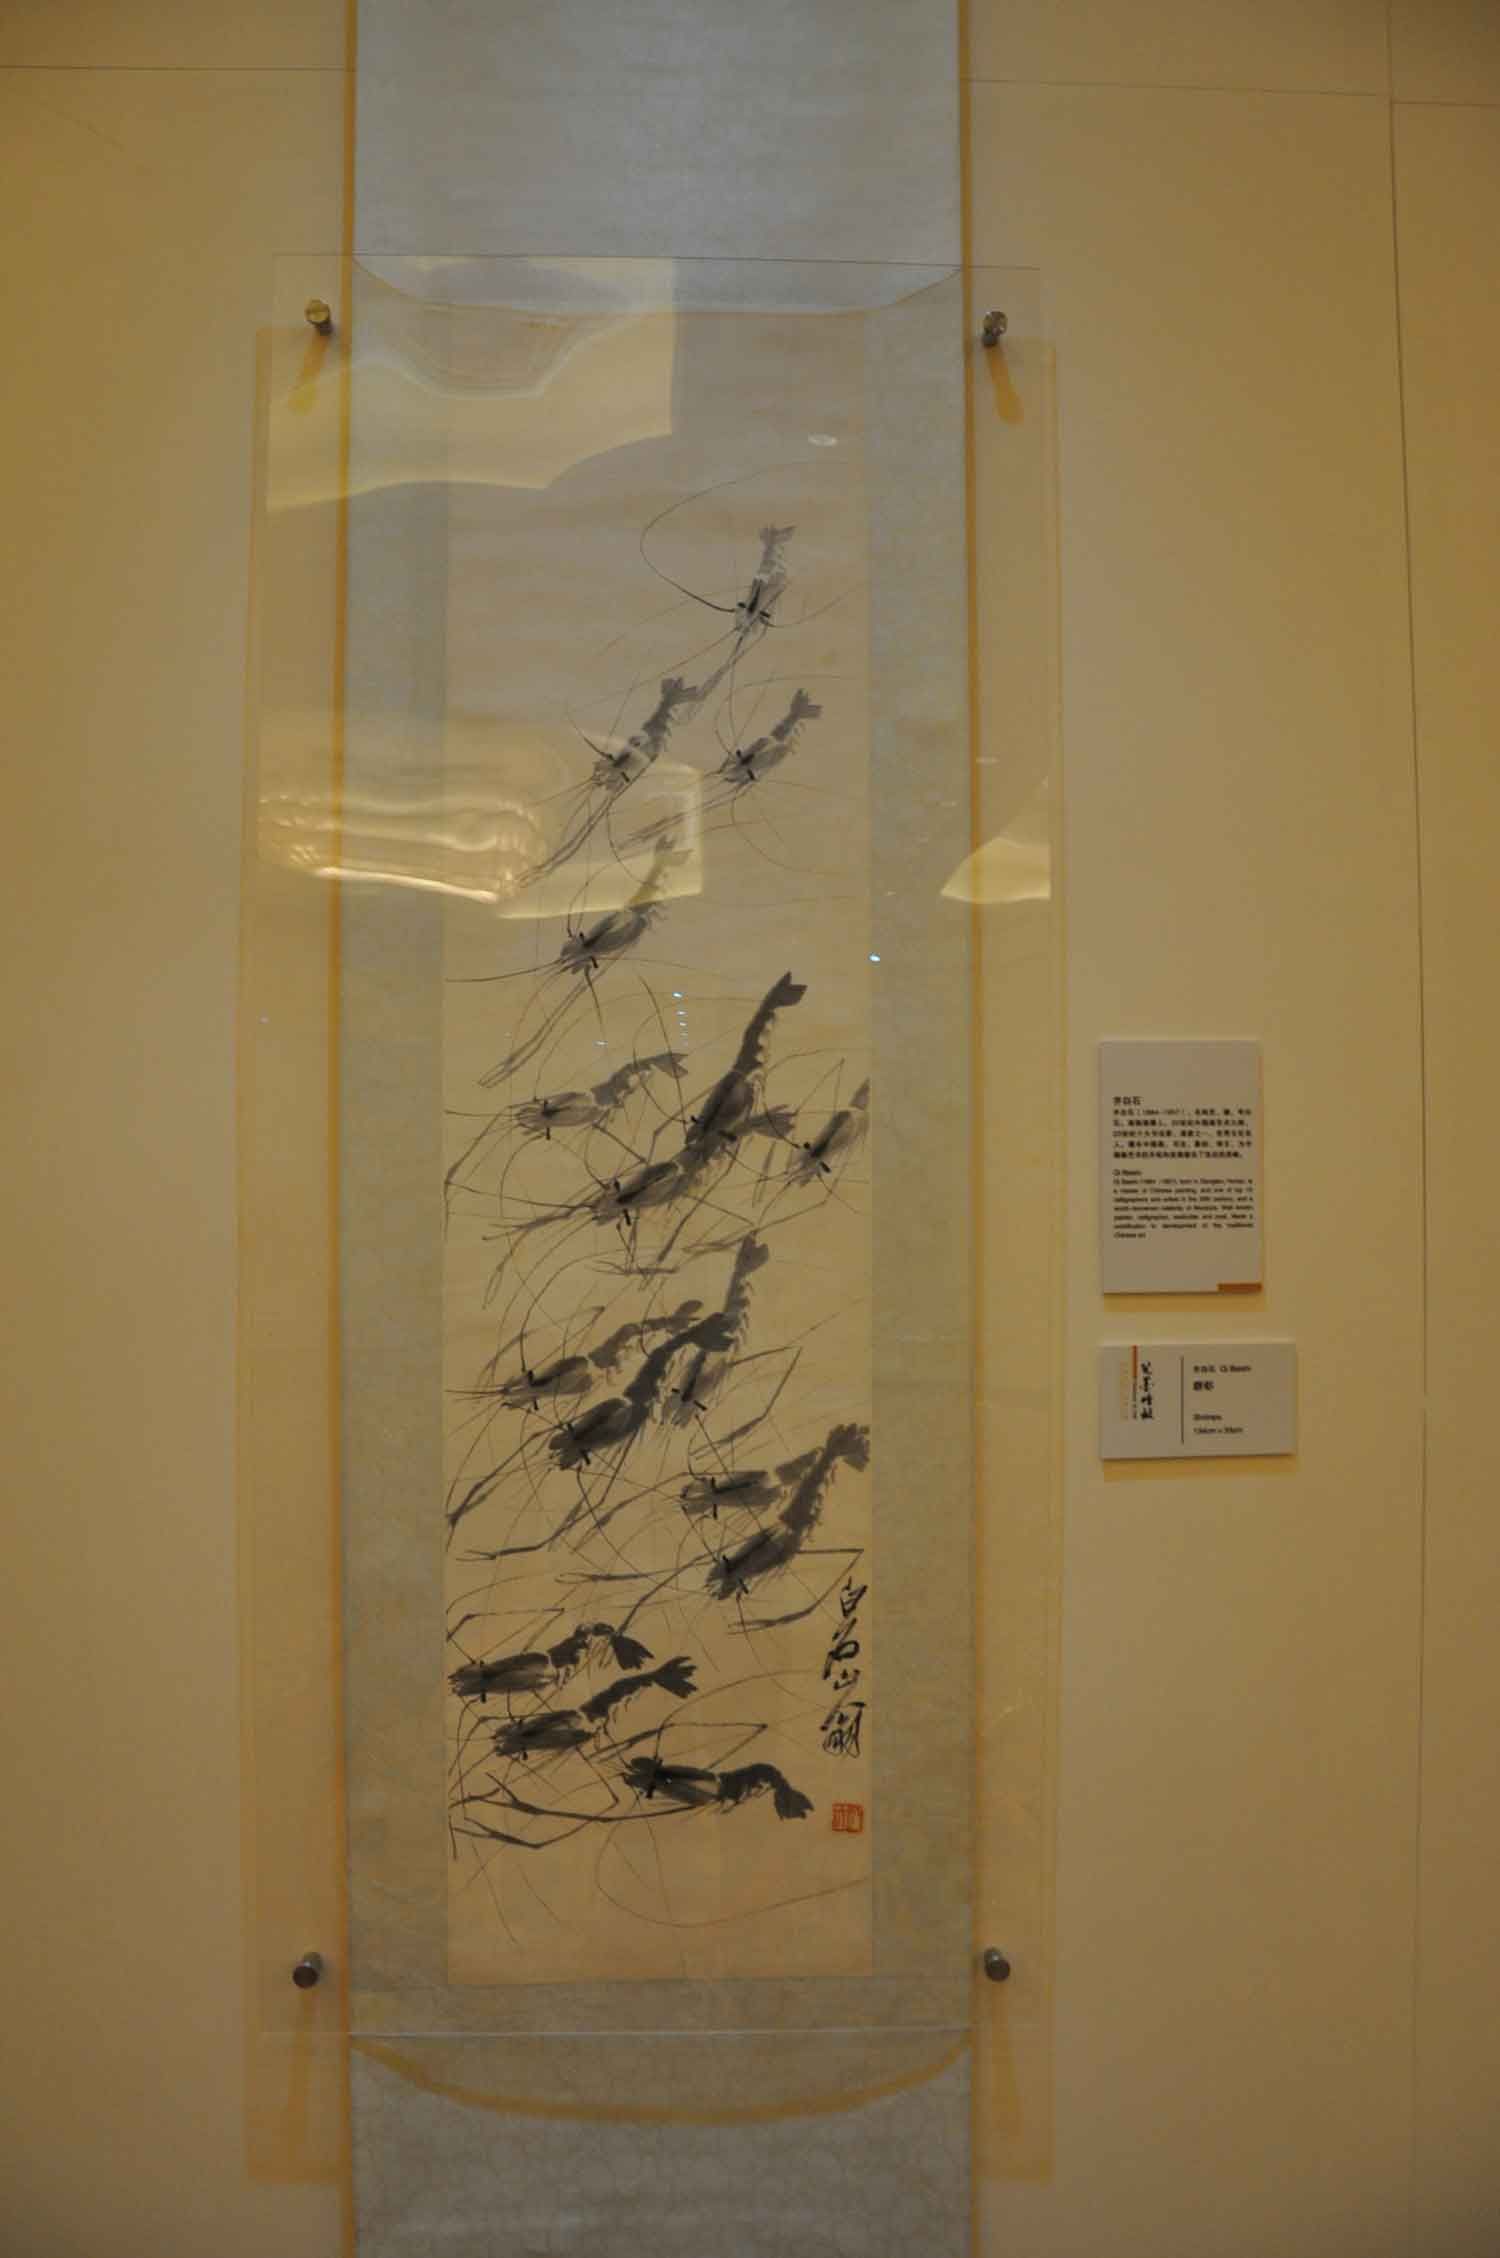 Venetian Master of Ink Exhibition Qi Baishi